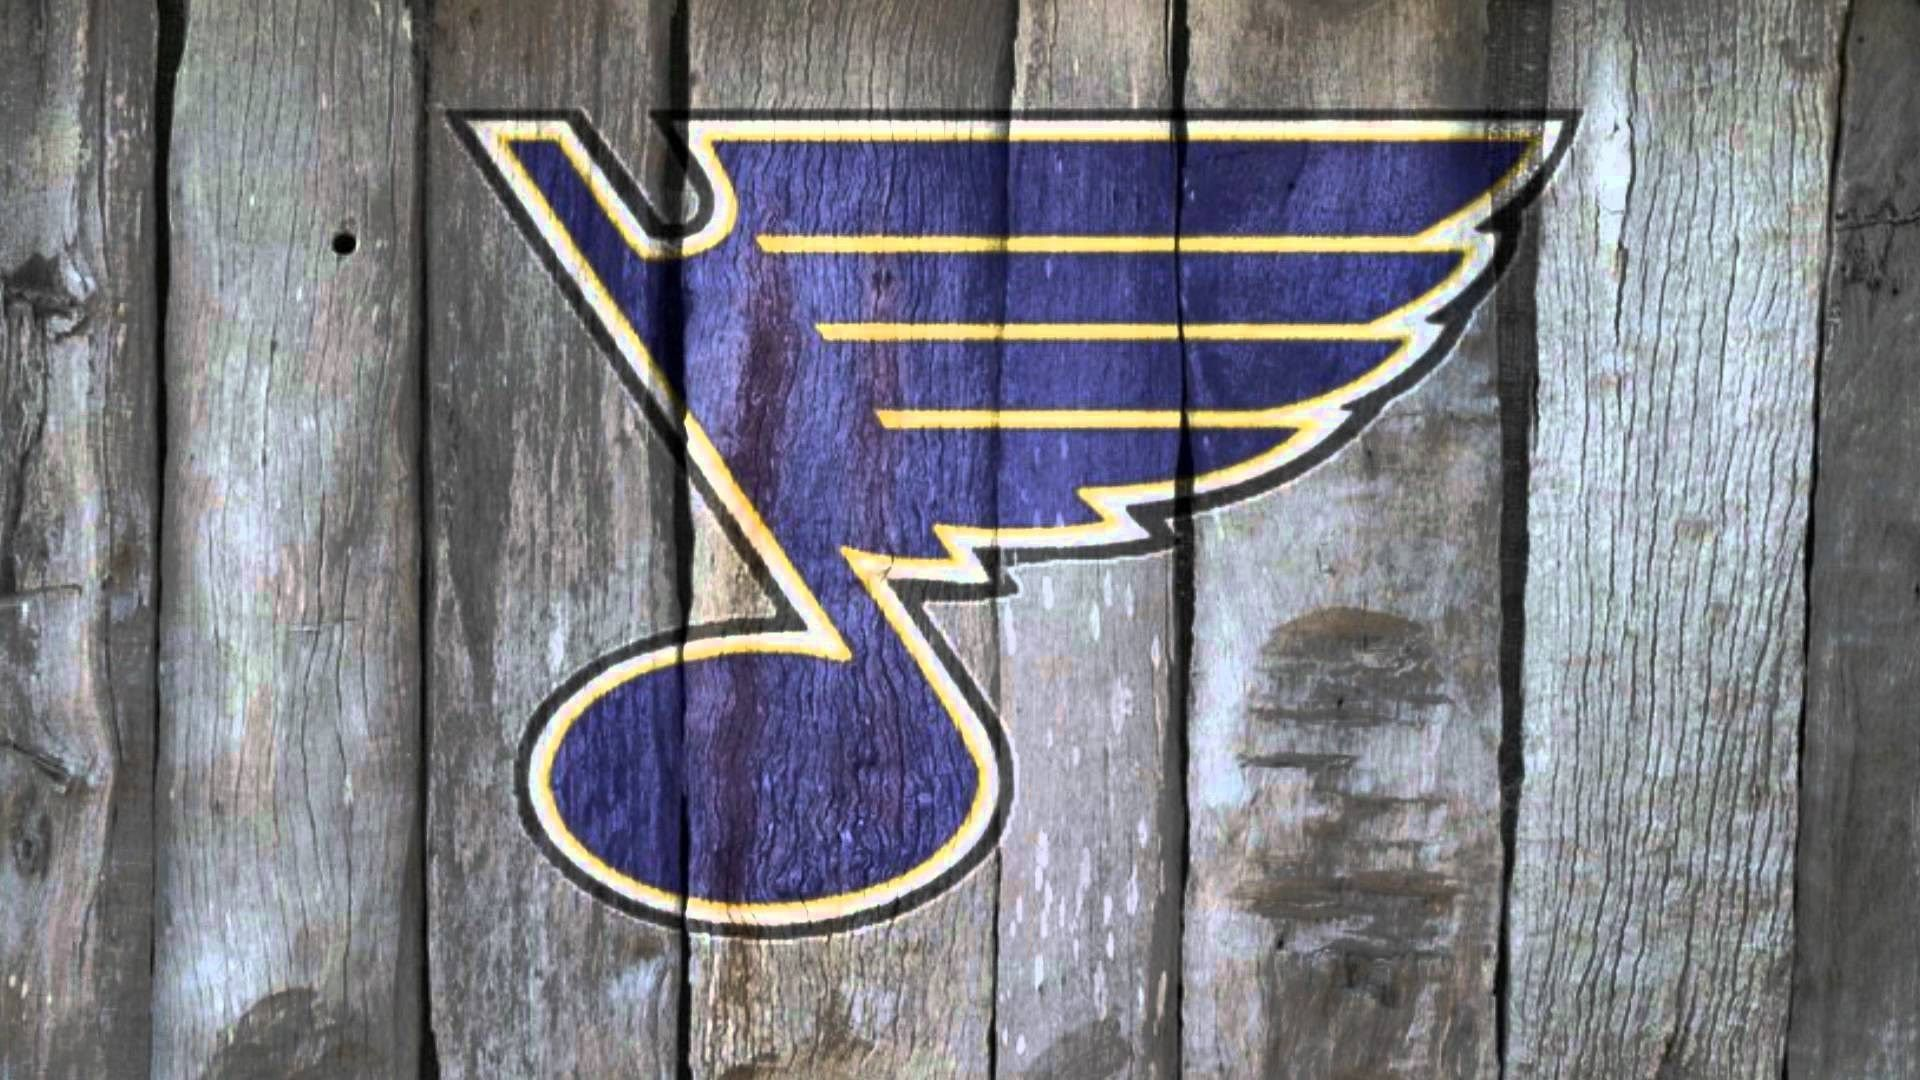 St louis blues hd photo sharovarka pinterest st louis blues